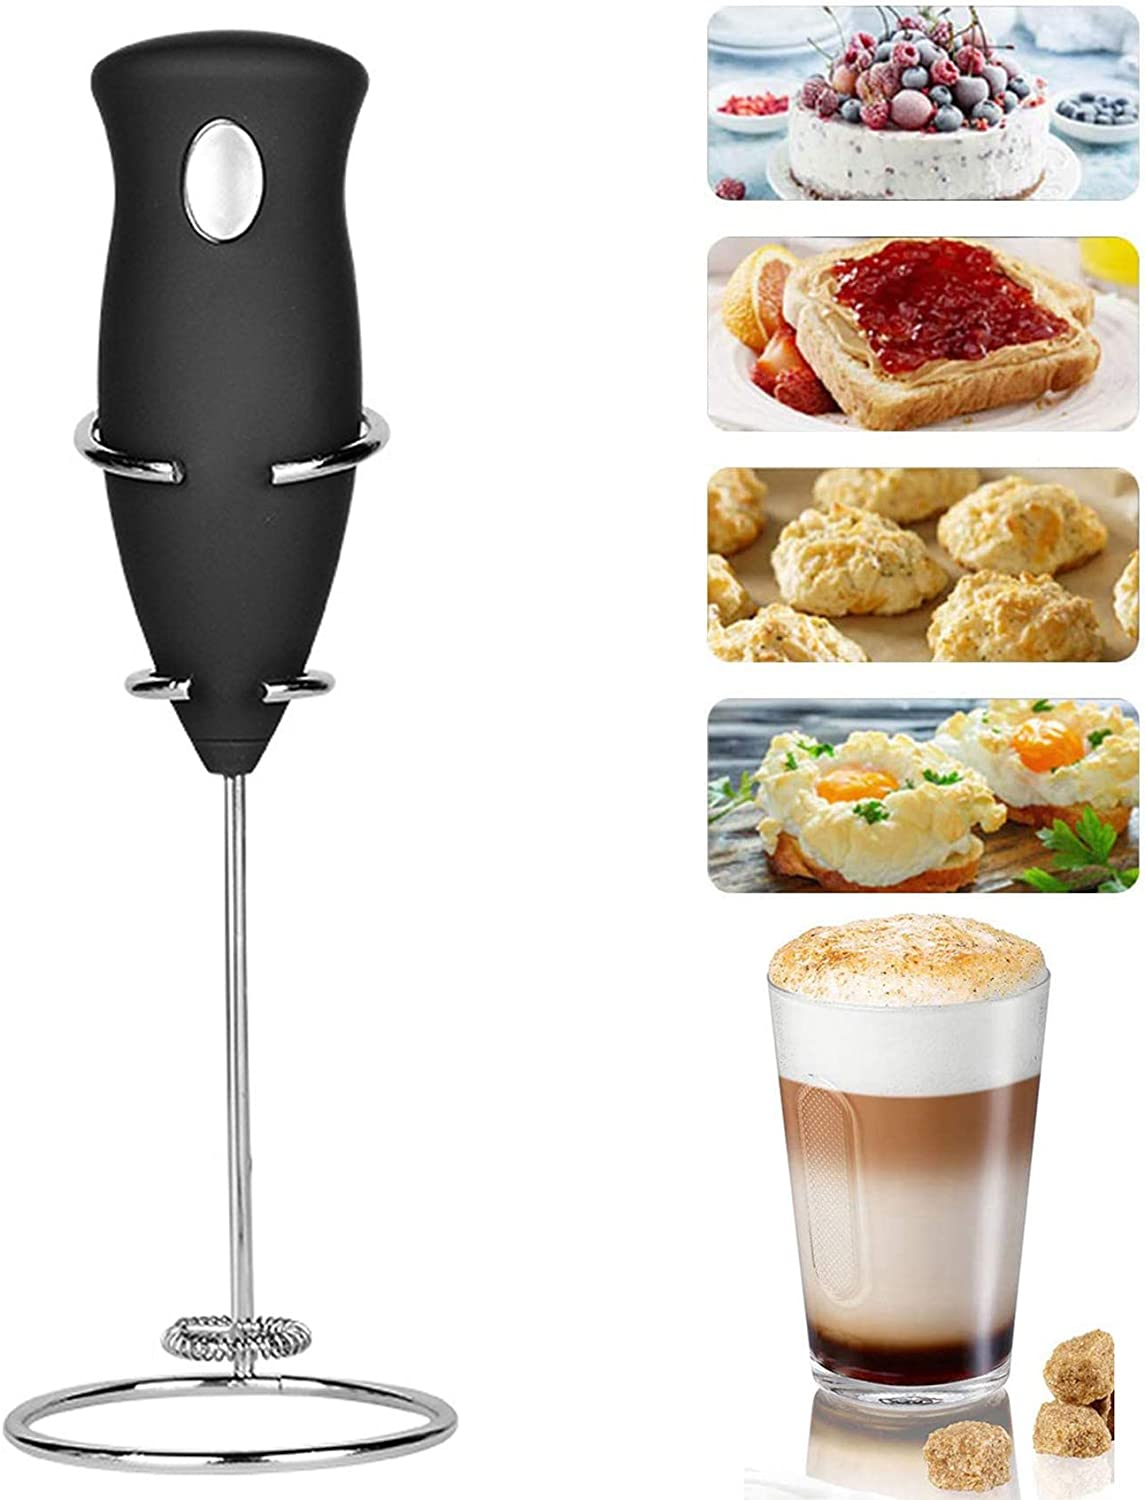 Handheld Milk Frother, Electric Hand Foamer Blender for Drink Mixer, Perfect for Coffee, Latte, Cappuccino, Hot Chocolate, Durable Drink Mixer With Stainless Steel Whisk, Stainless Steel Stand Include (Black)